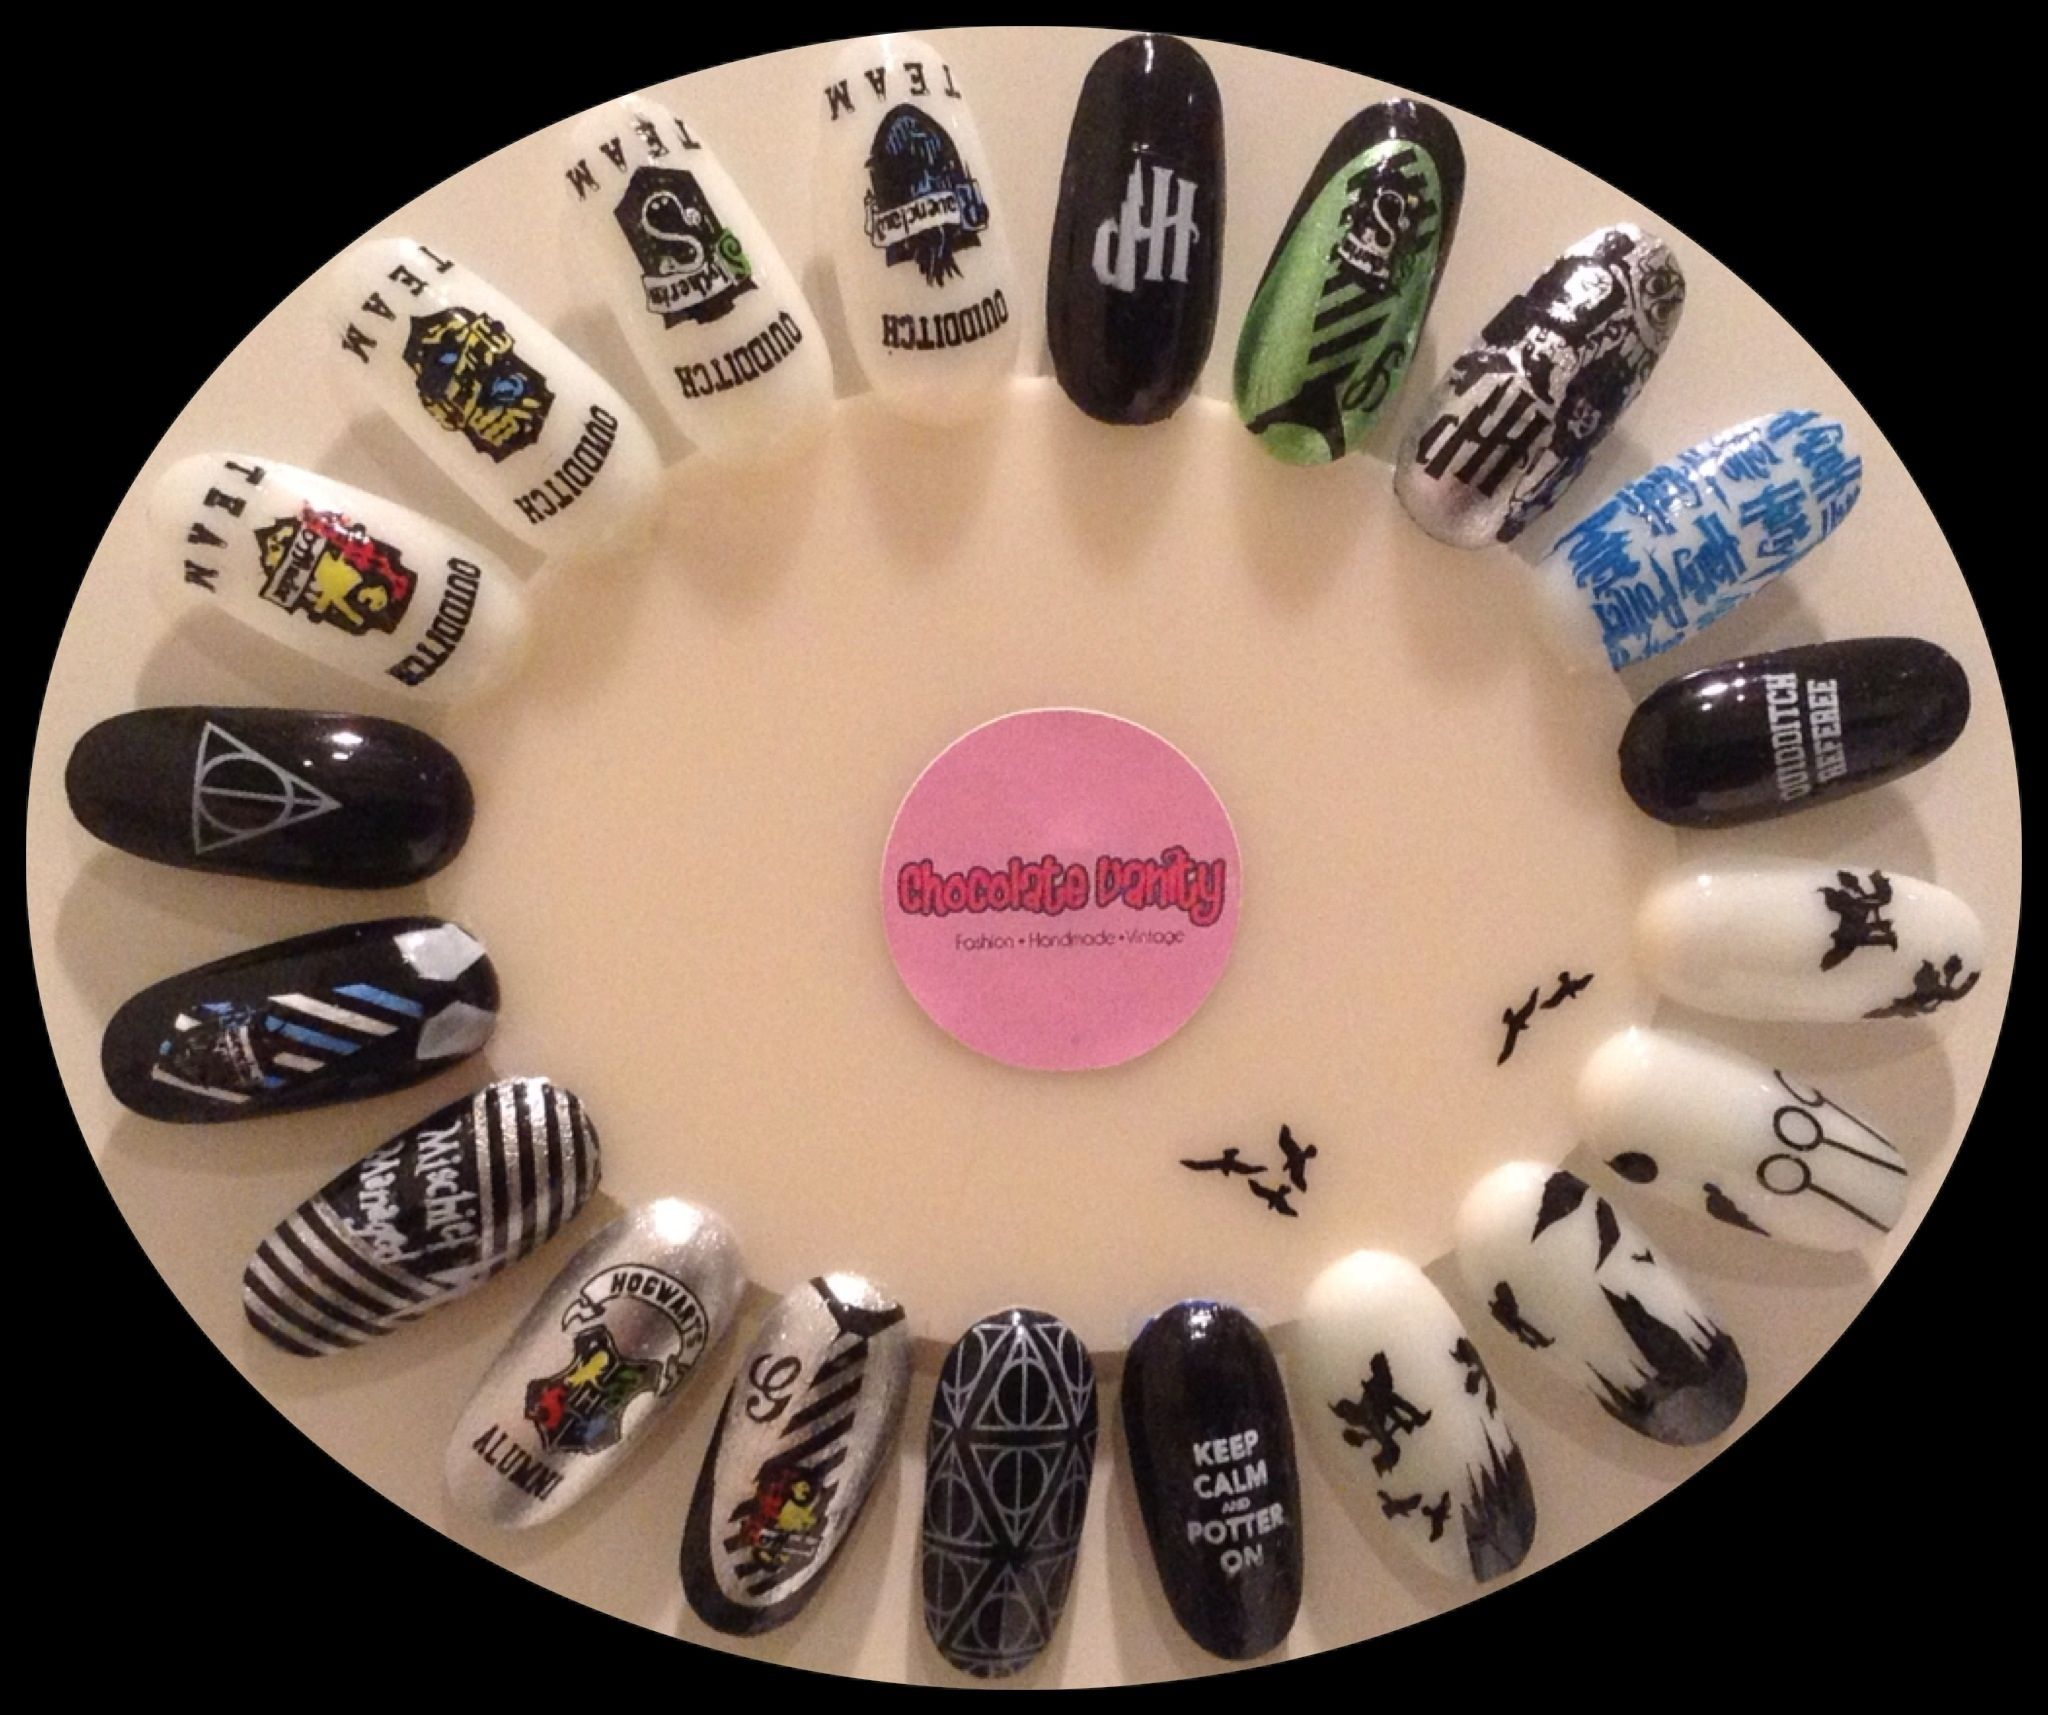 Harry Potter Hp Nail Stamping Plate Ww Harry Potter Nails Harry Potter Nail Art Harry Potter Nails Designs